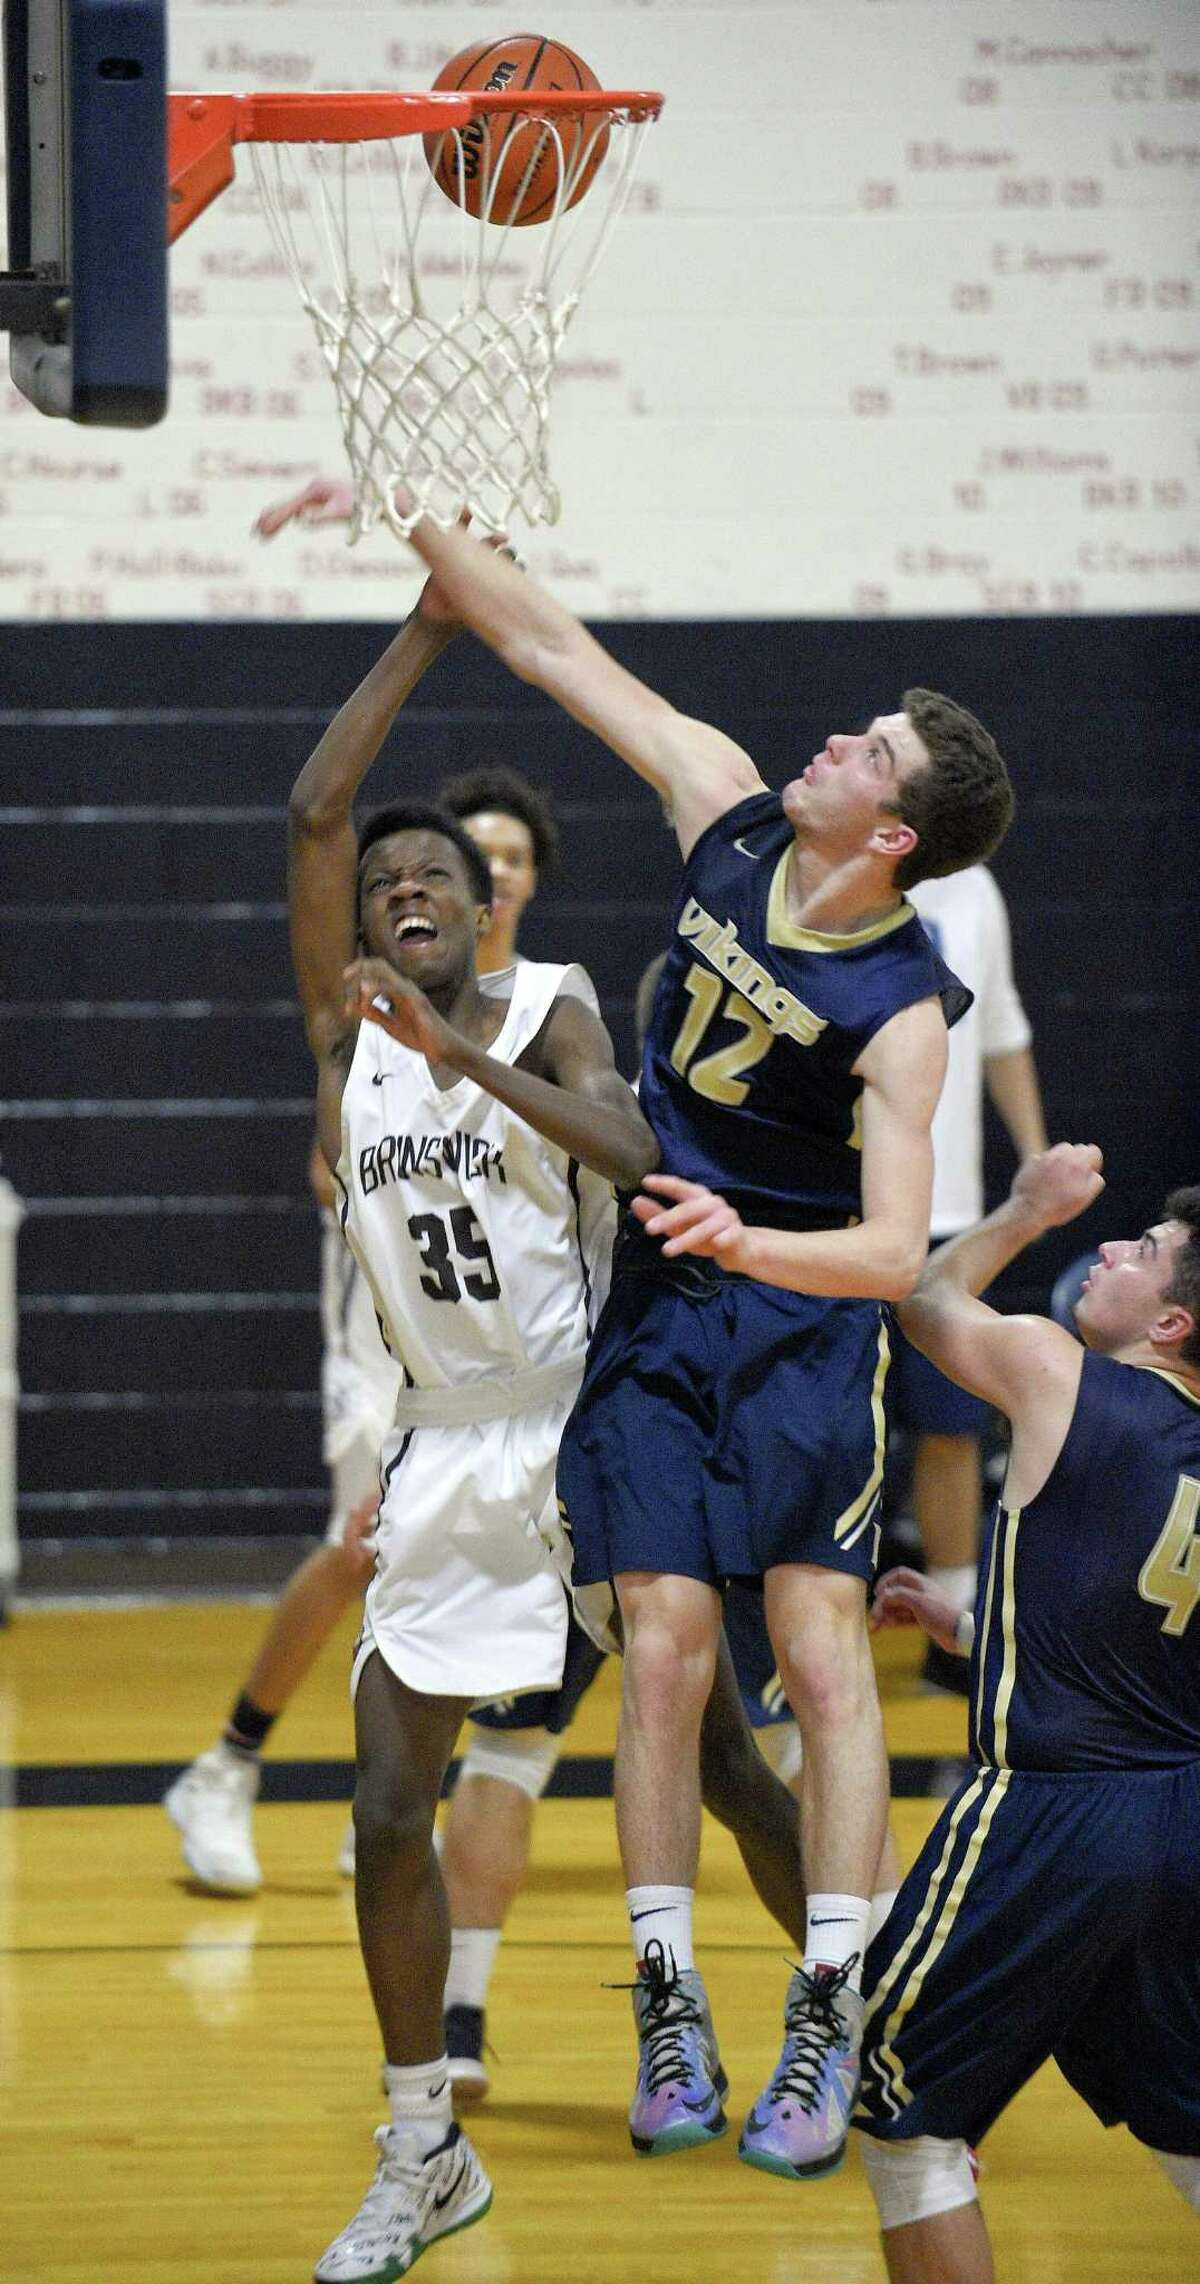 Brunswick Tristan Joseph (35) puts up a shot under pressure from King Renn Lints (12) in a FAA Boys Basketball Quarter Final game at King School on Tuesday, Feb. 20, 2018 in Stamford, Connecticut.